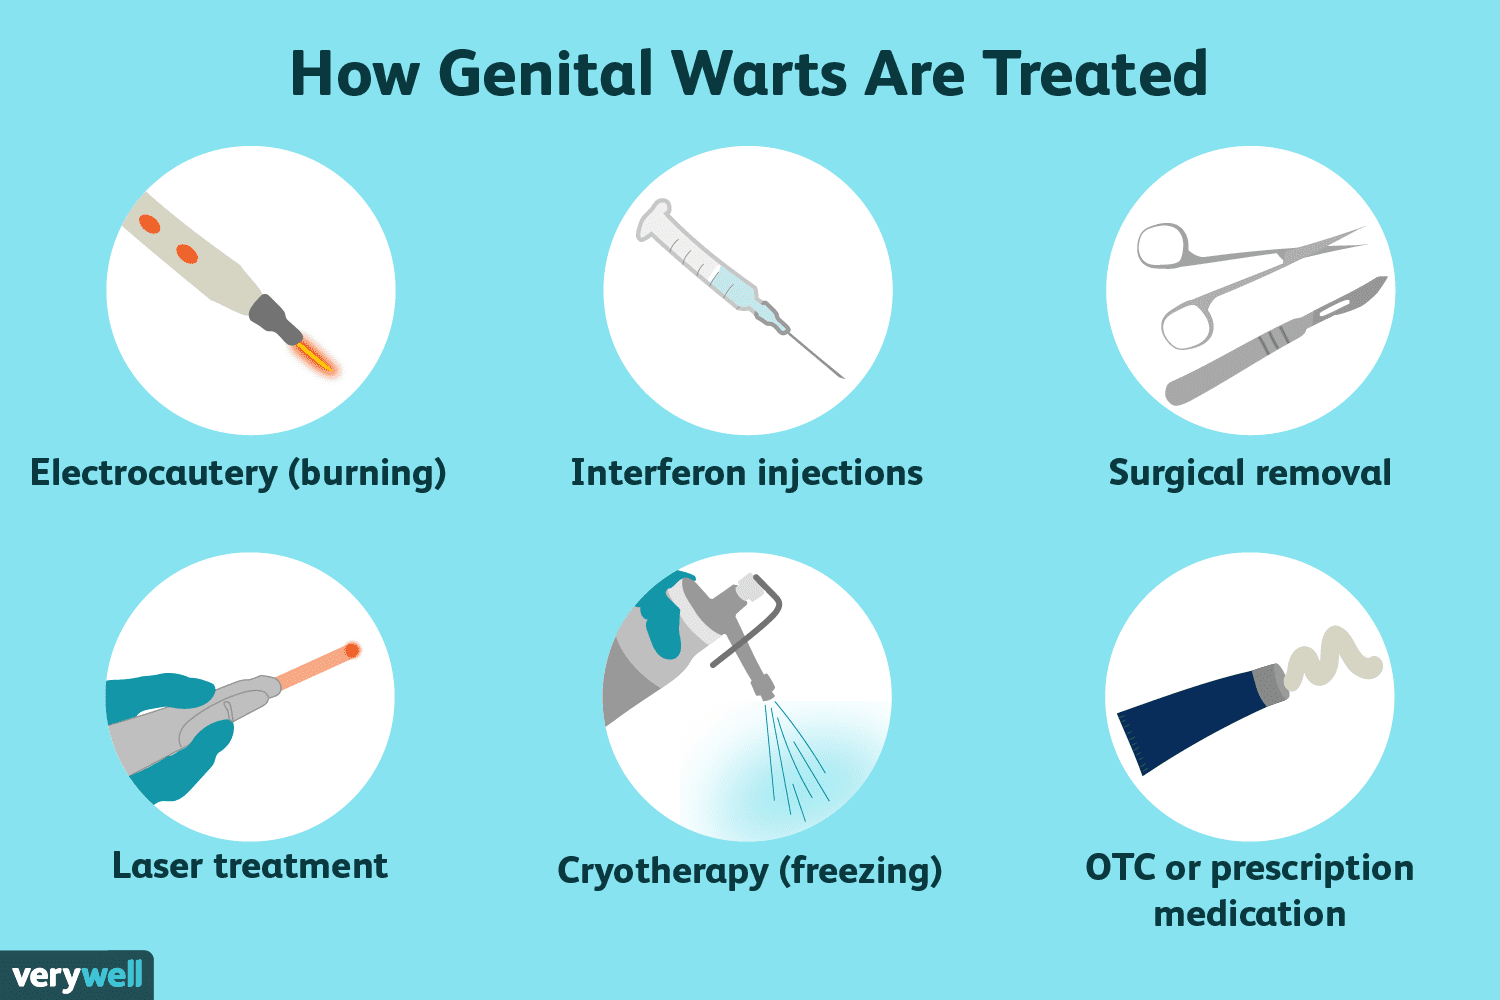 hpv wart removal includes